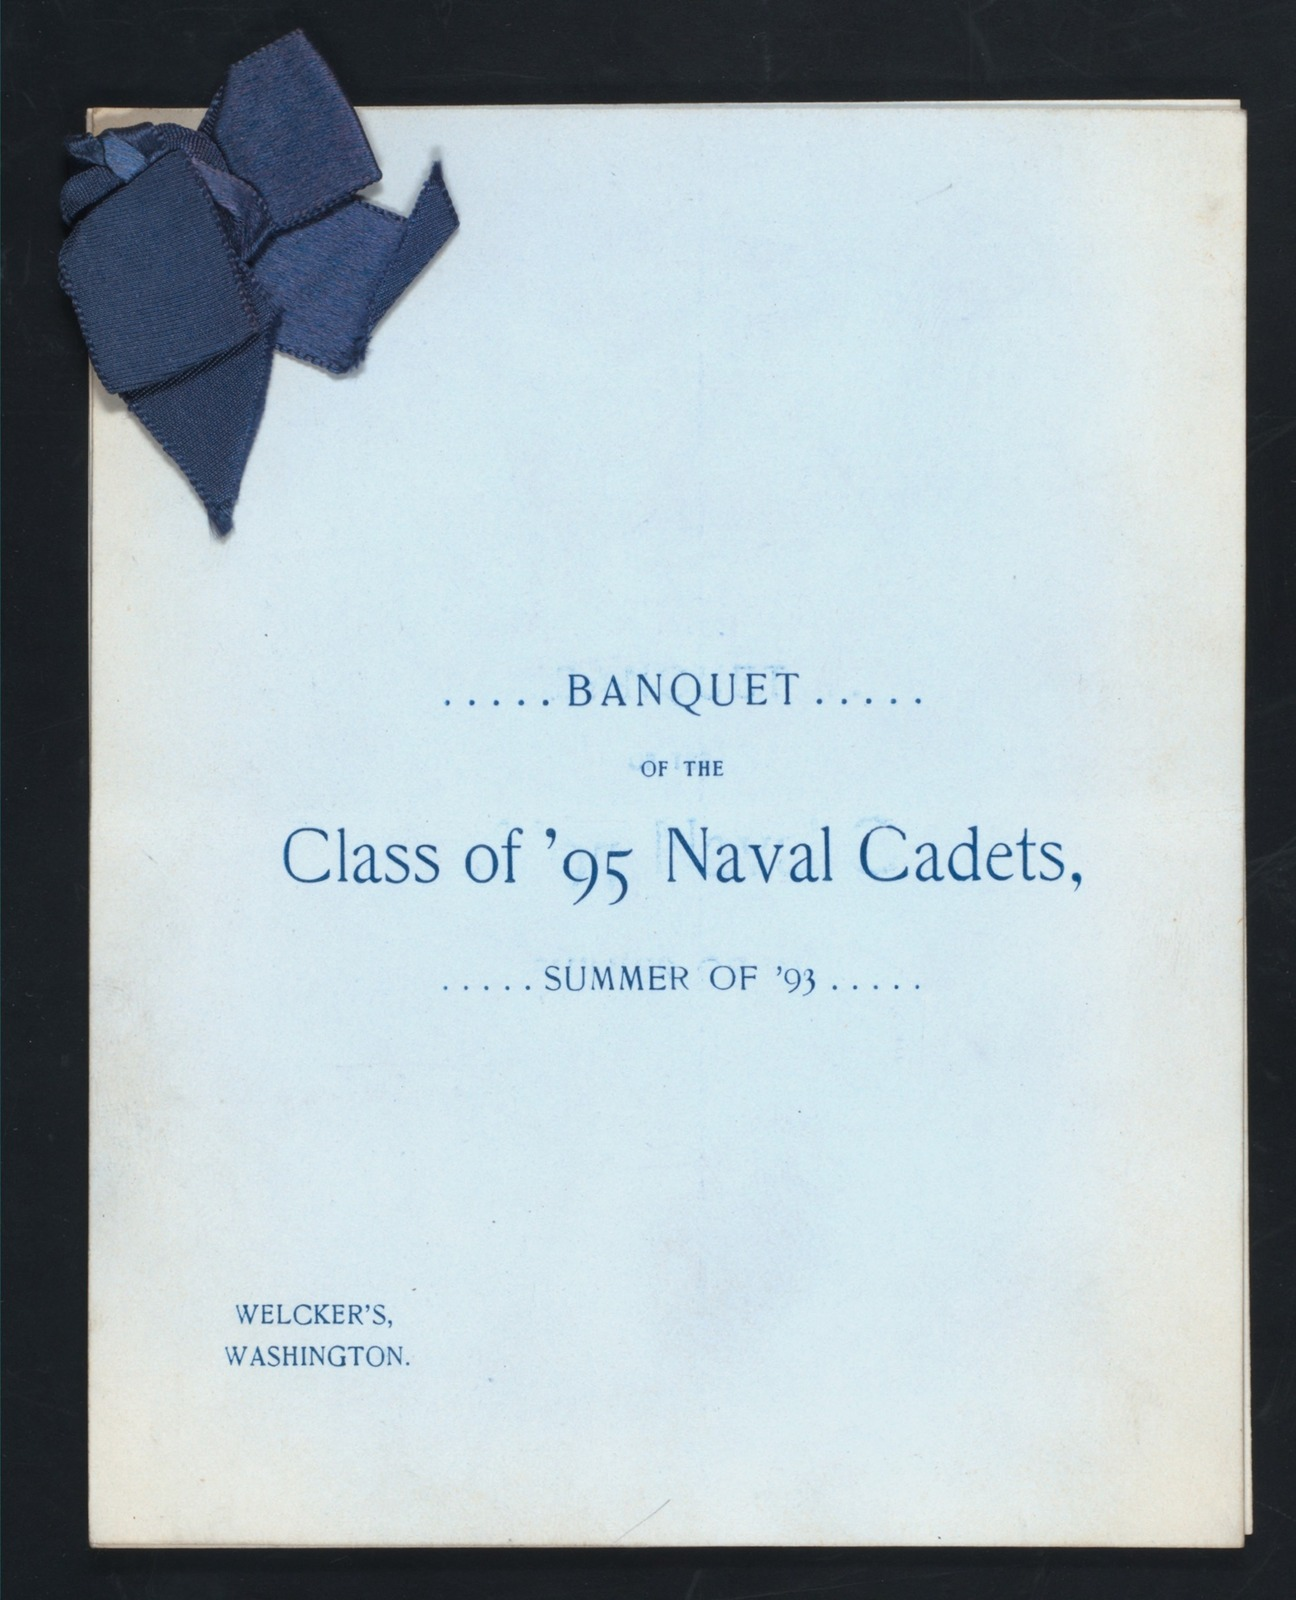 """BANQUET [held by] CLASS OF '95 NAVAL CADETA [at] """"WELCKER'S, WASHINGTON, D.C."""" (REST;)"""